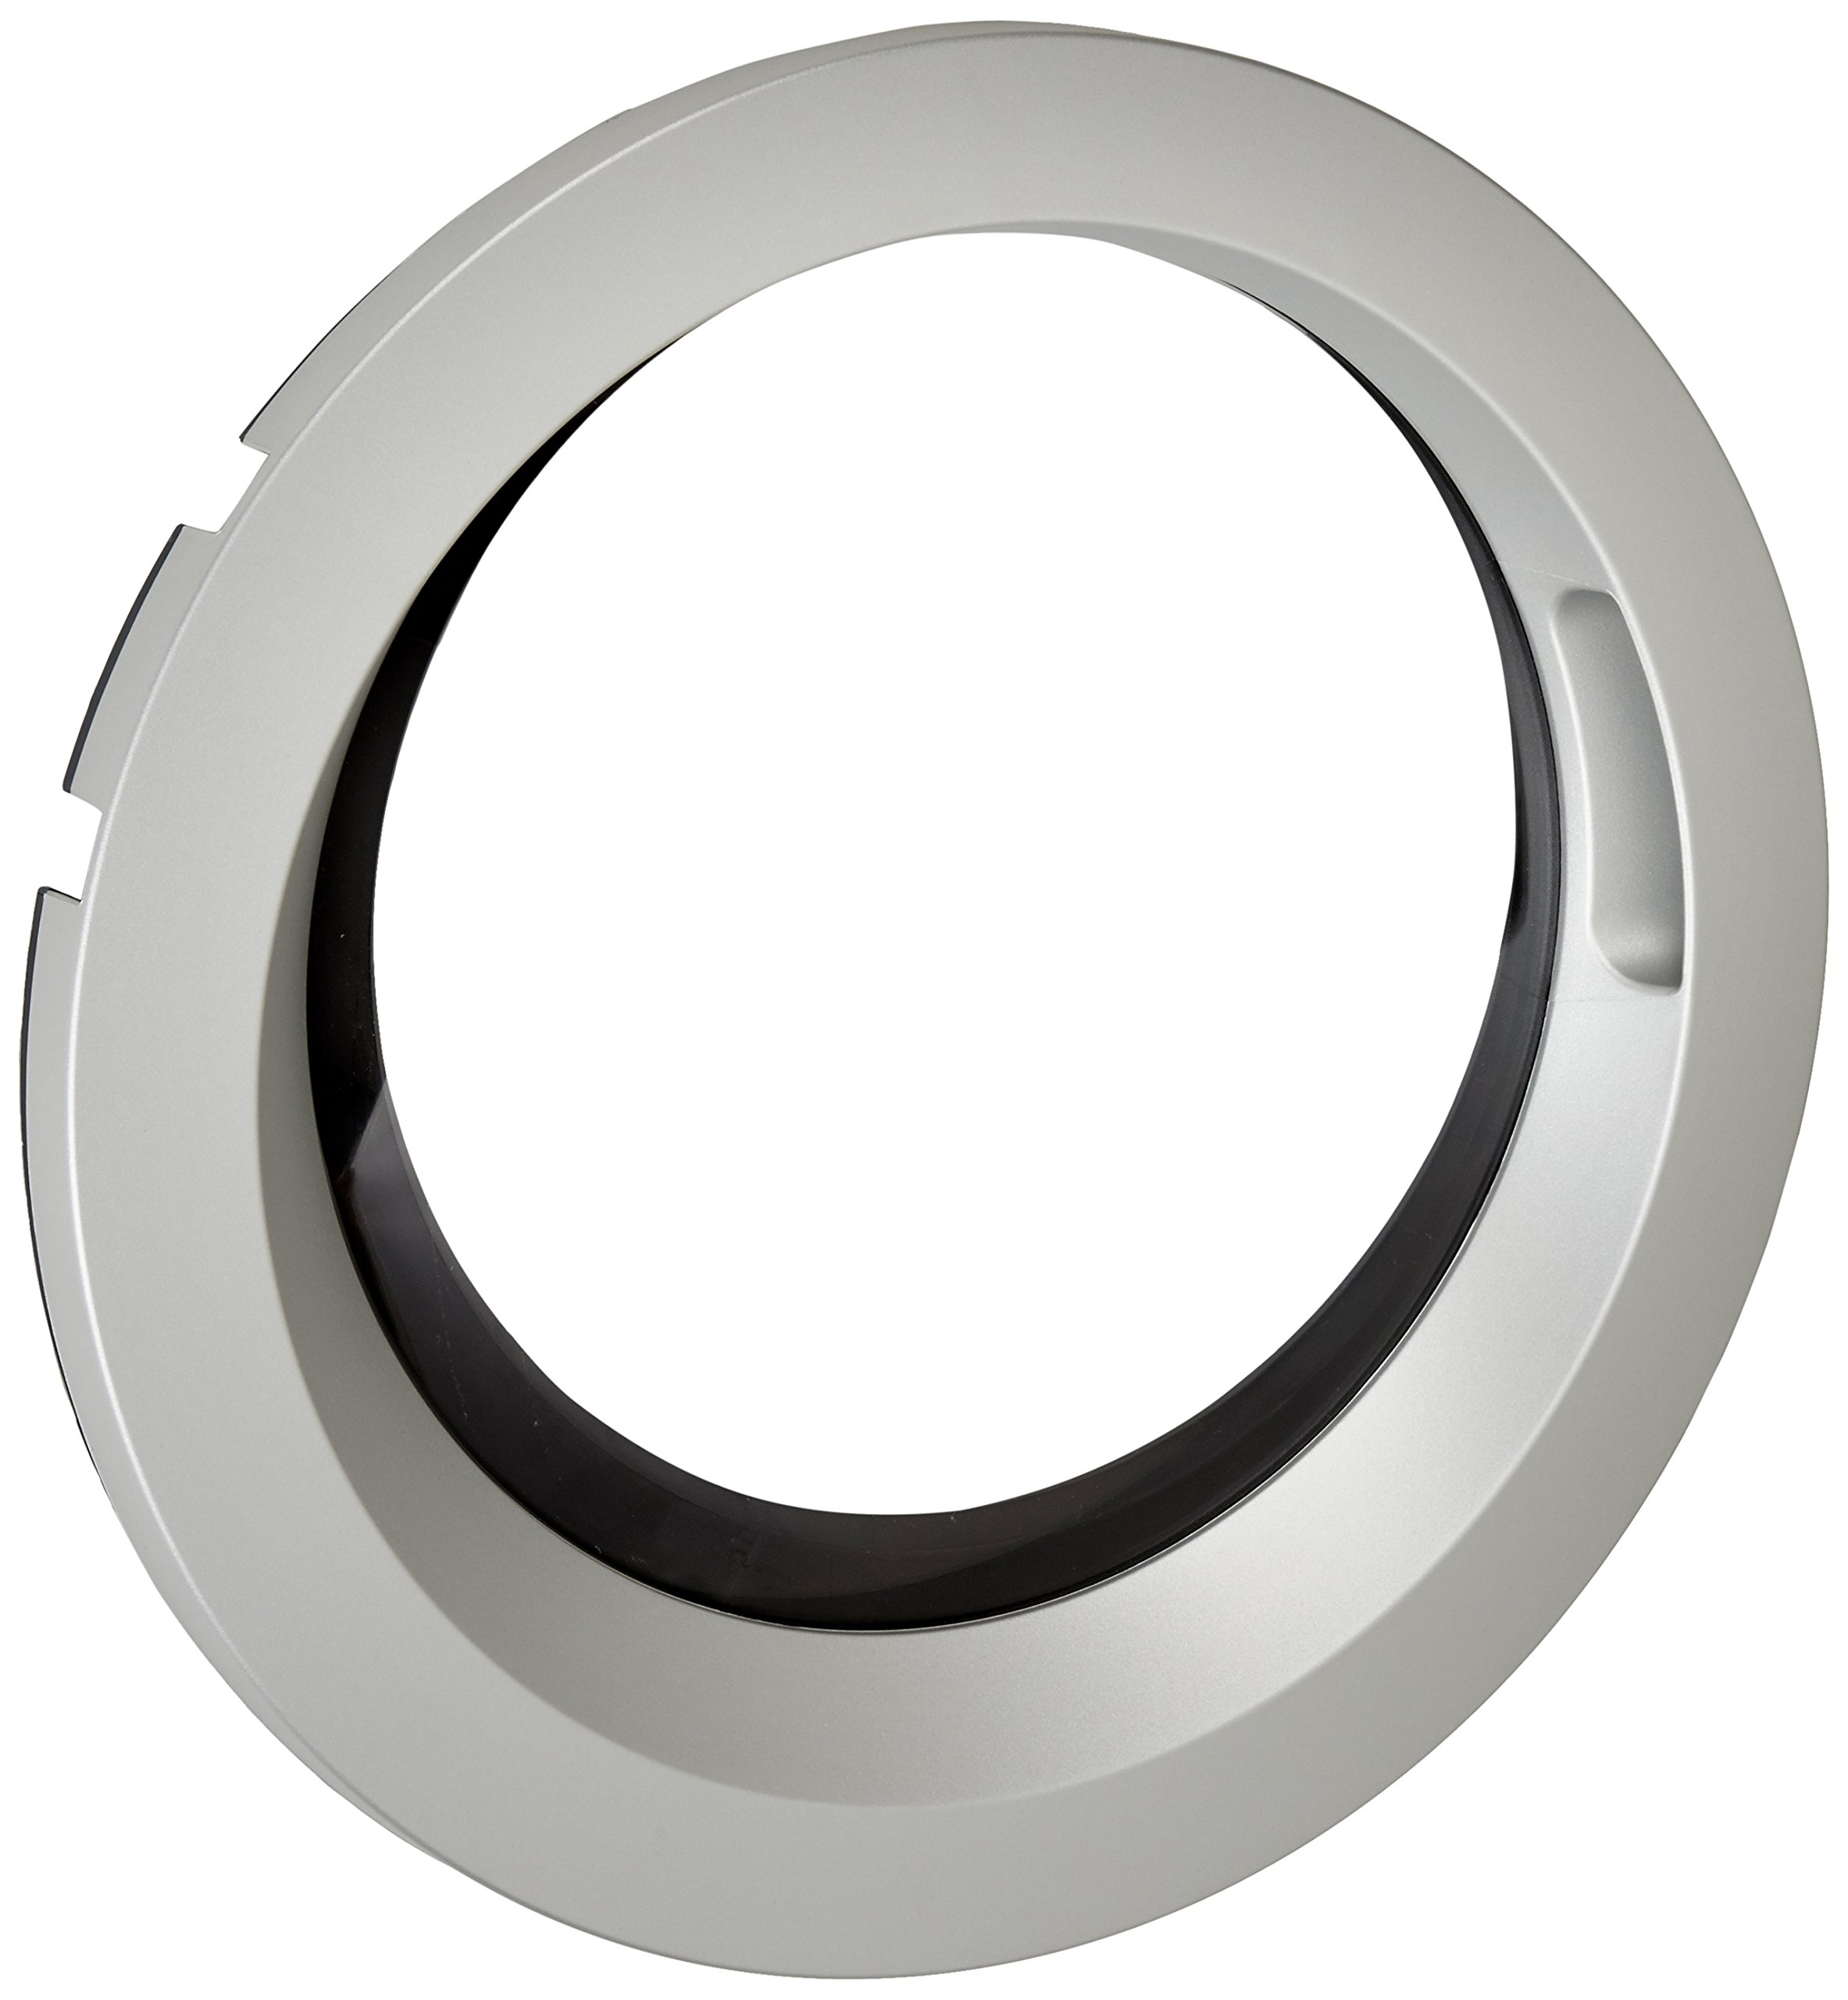 Frigidaire 134550510 Outer Door Panel for Washer by Frigidaire (Image #1)